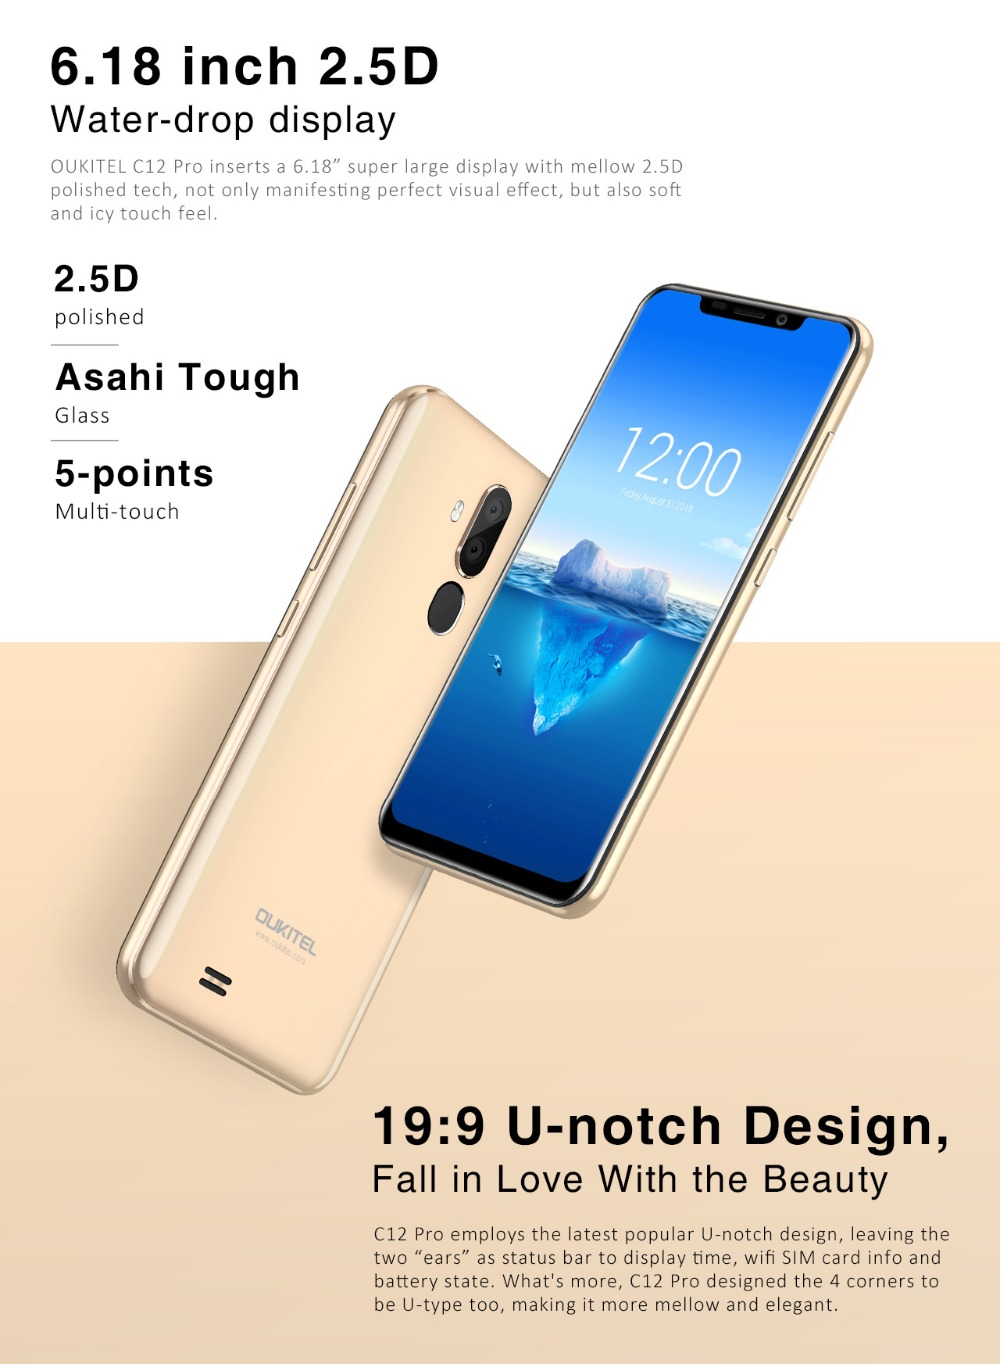 Details about 2019 C12 Pro 4G LTE or Oukitel C12 3G 2GB+16GB Smartphone  6 18